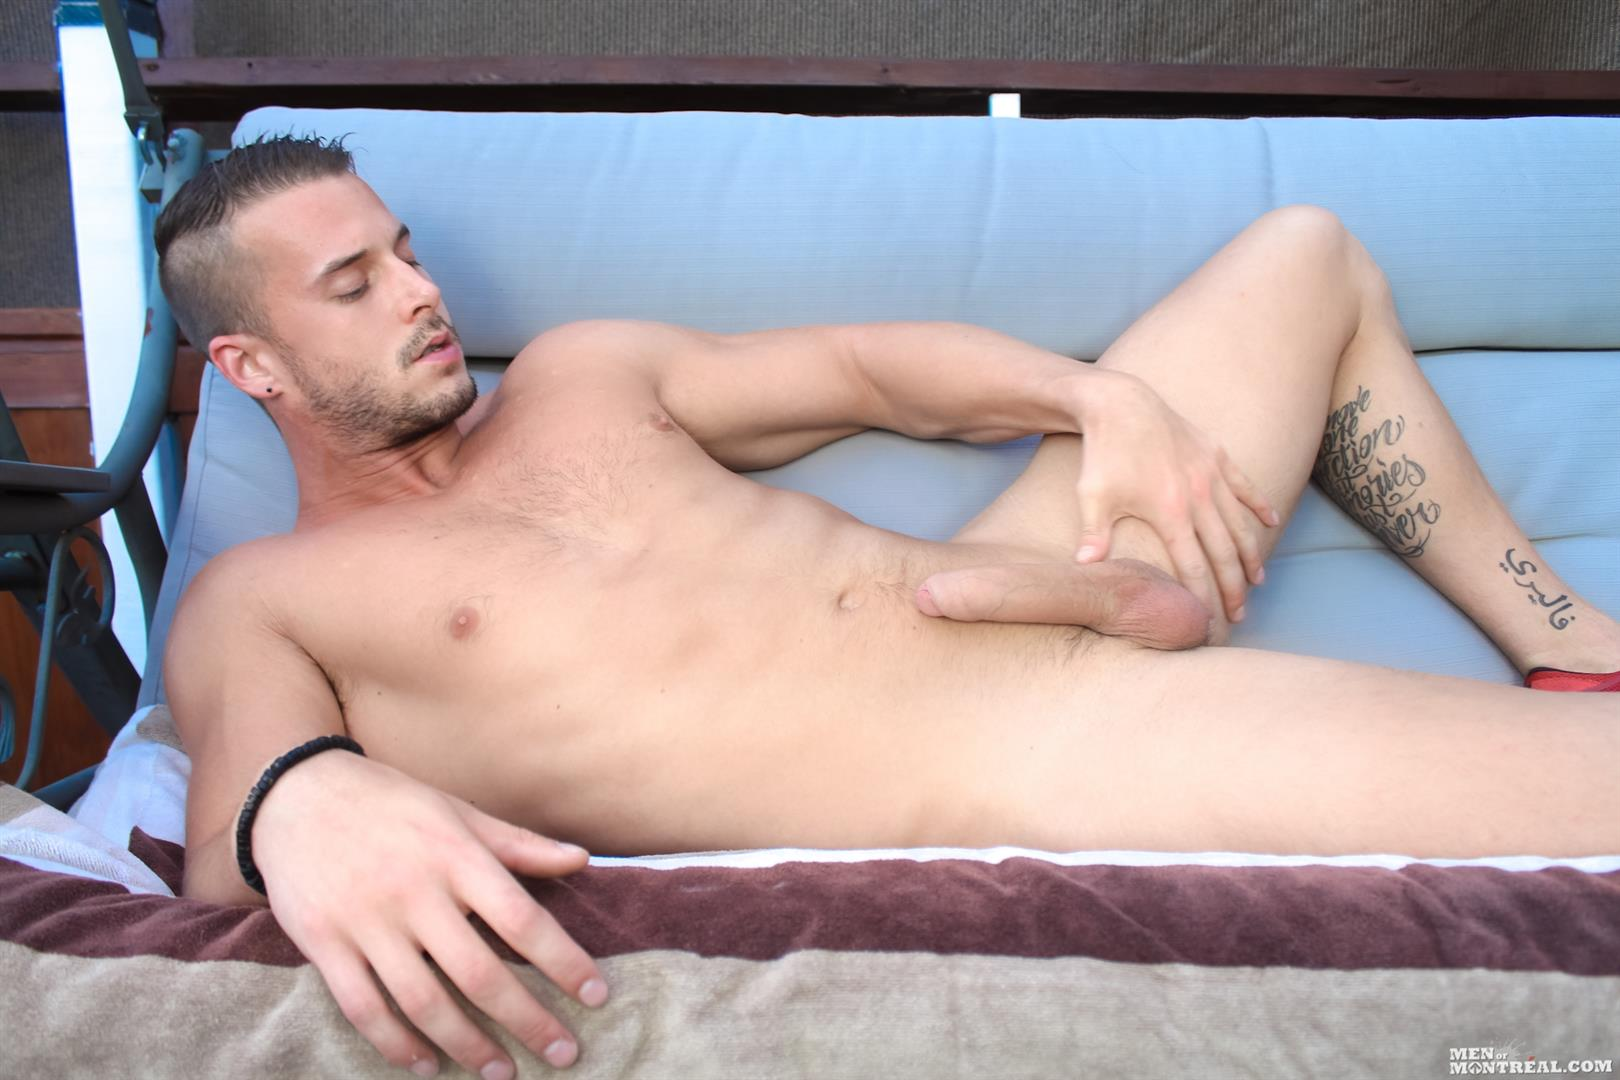 Men-of-Montreal-Nathan-Fox-Canadian-Hunk-Jerking-His-Big-Uncut-Cock-Amateur-Gay-Porn-08 Canadian Hunk Nathan Fox Jerking Off His Big Uncut Cock